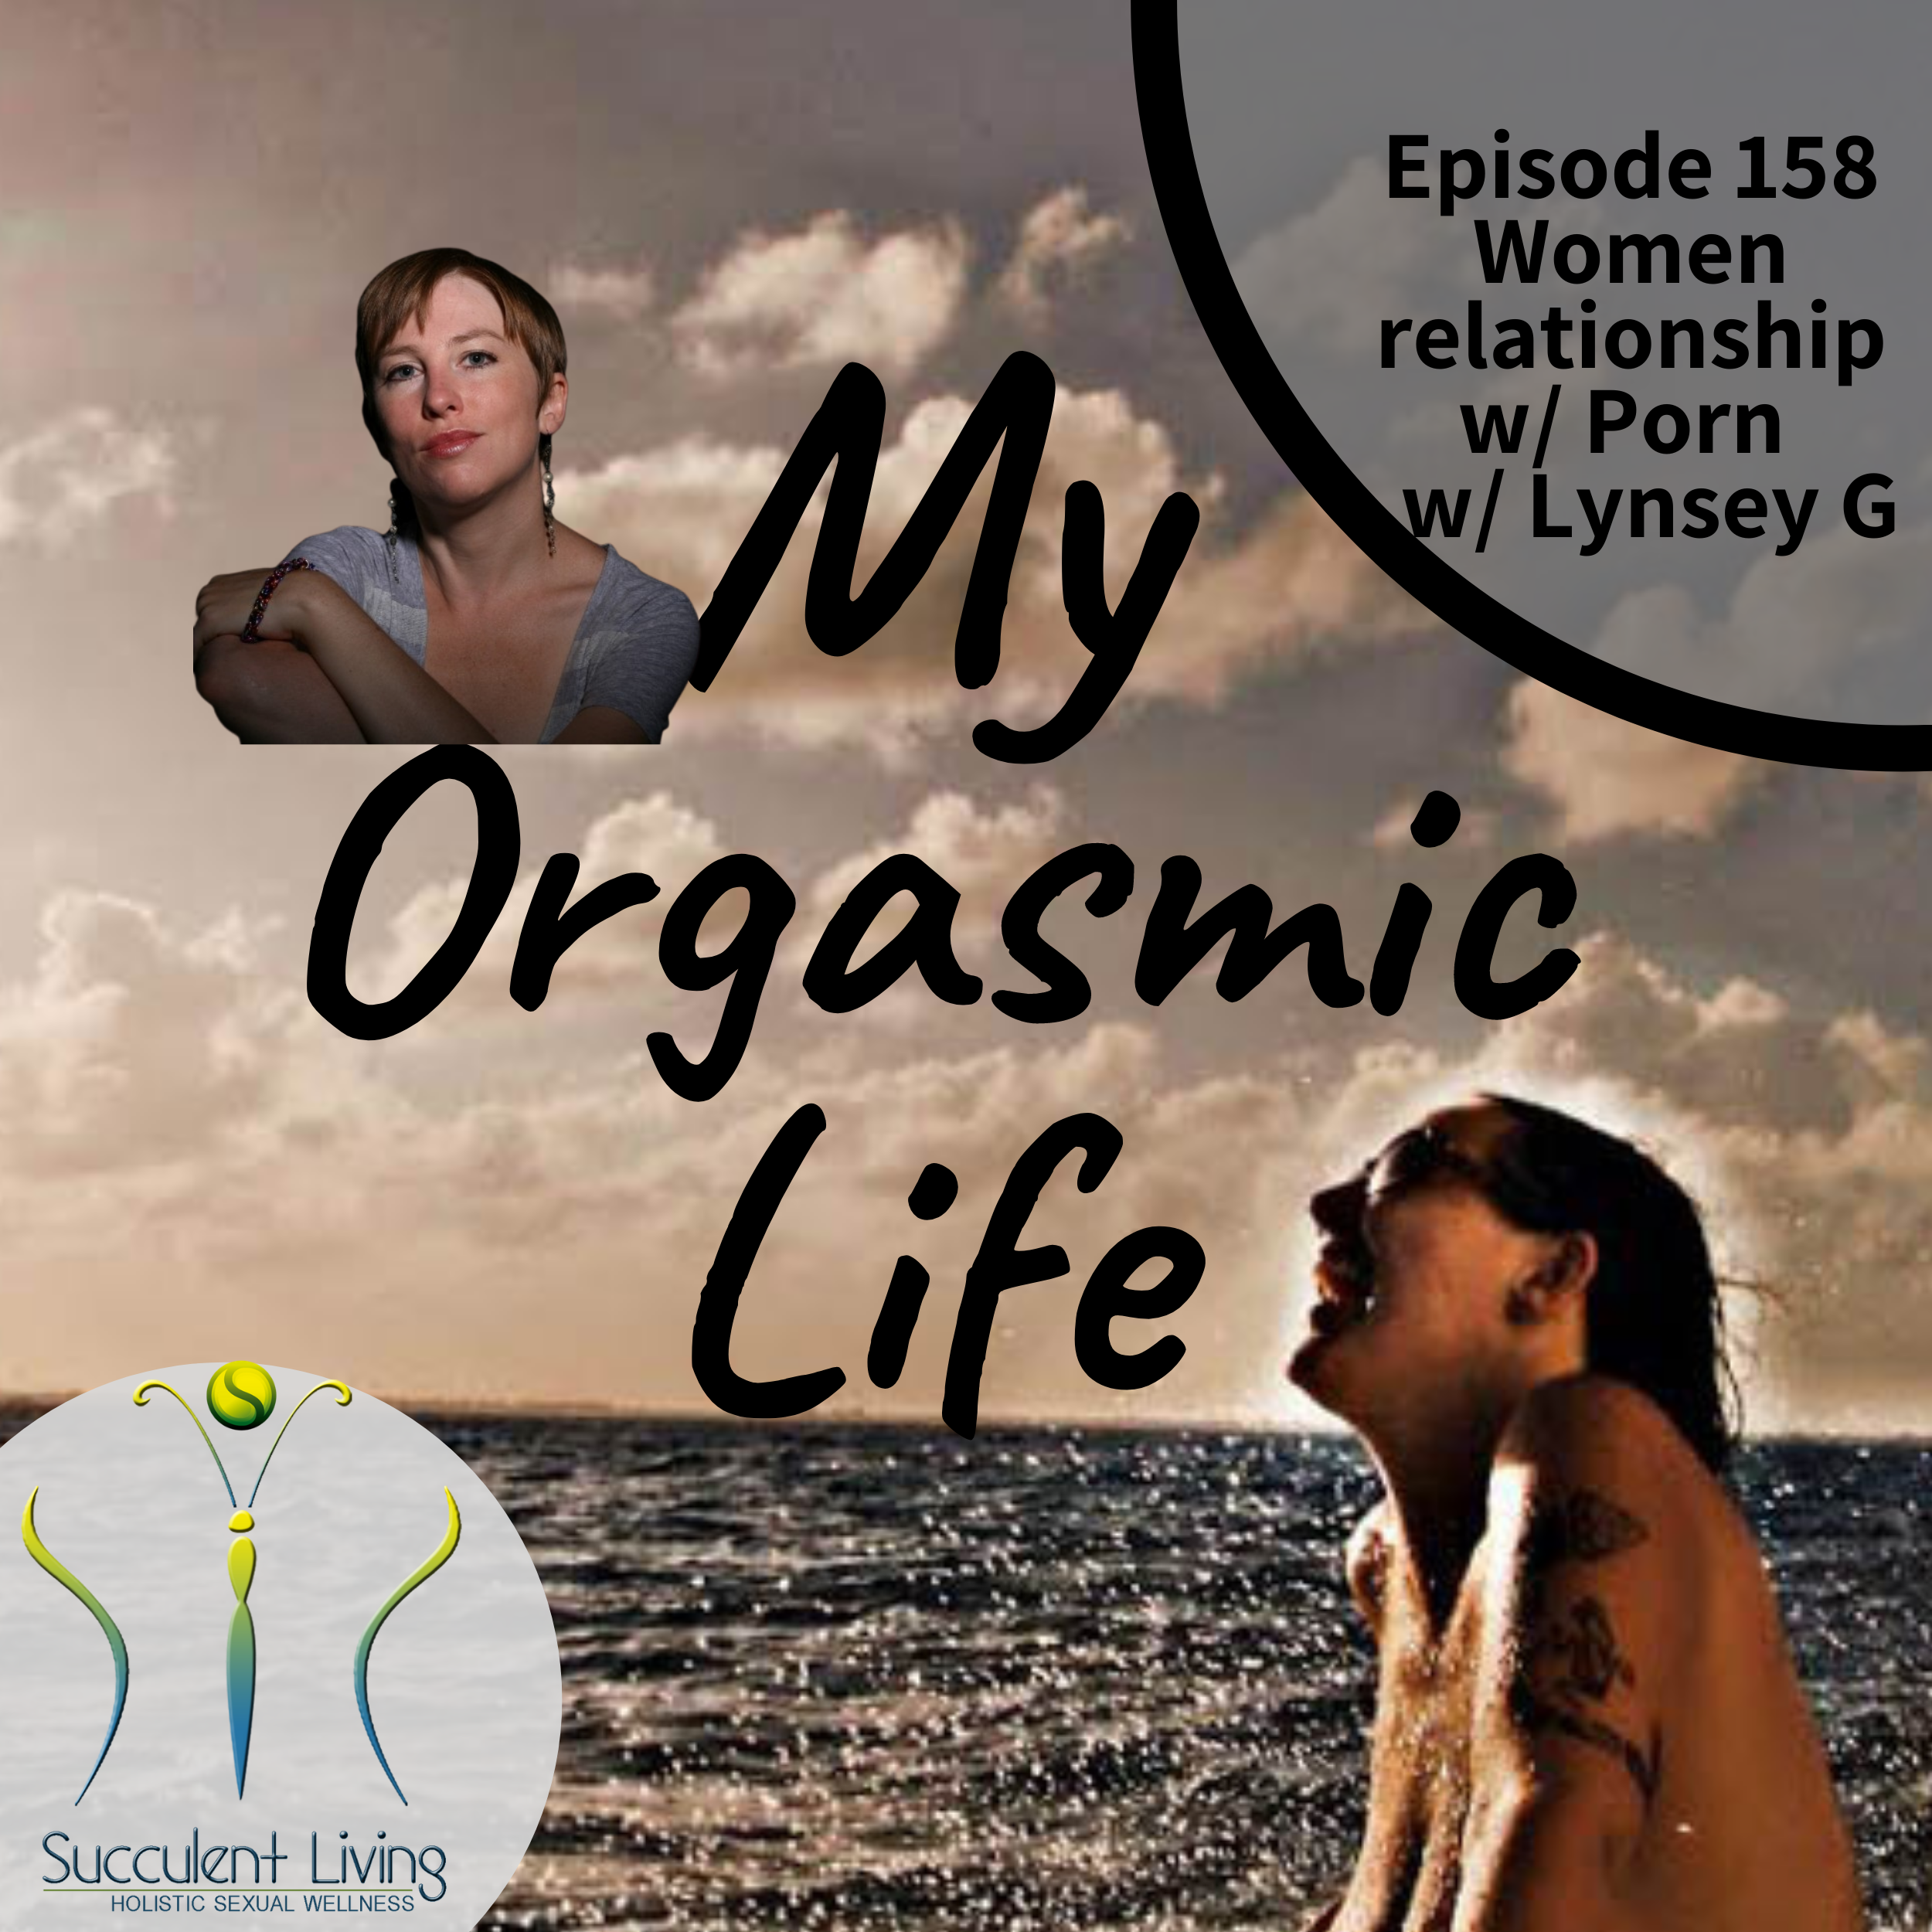 My Orgasmic Life -  Women Relationship With Porn with co-host Lynsey G